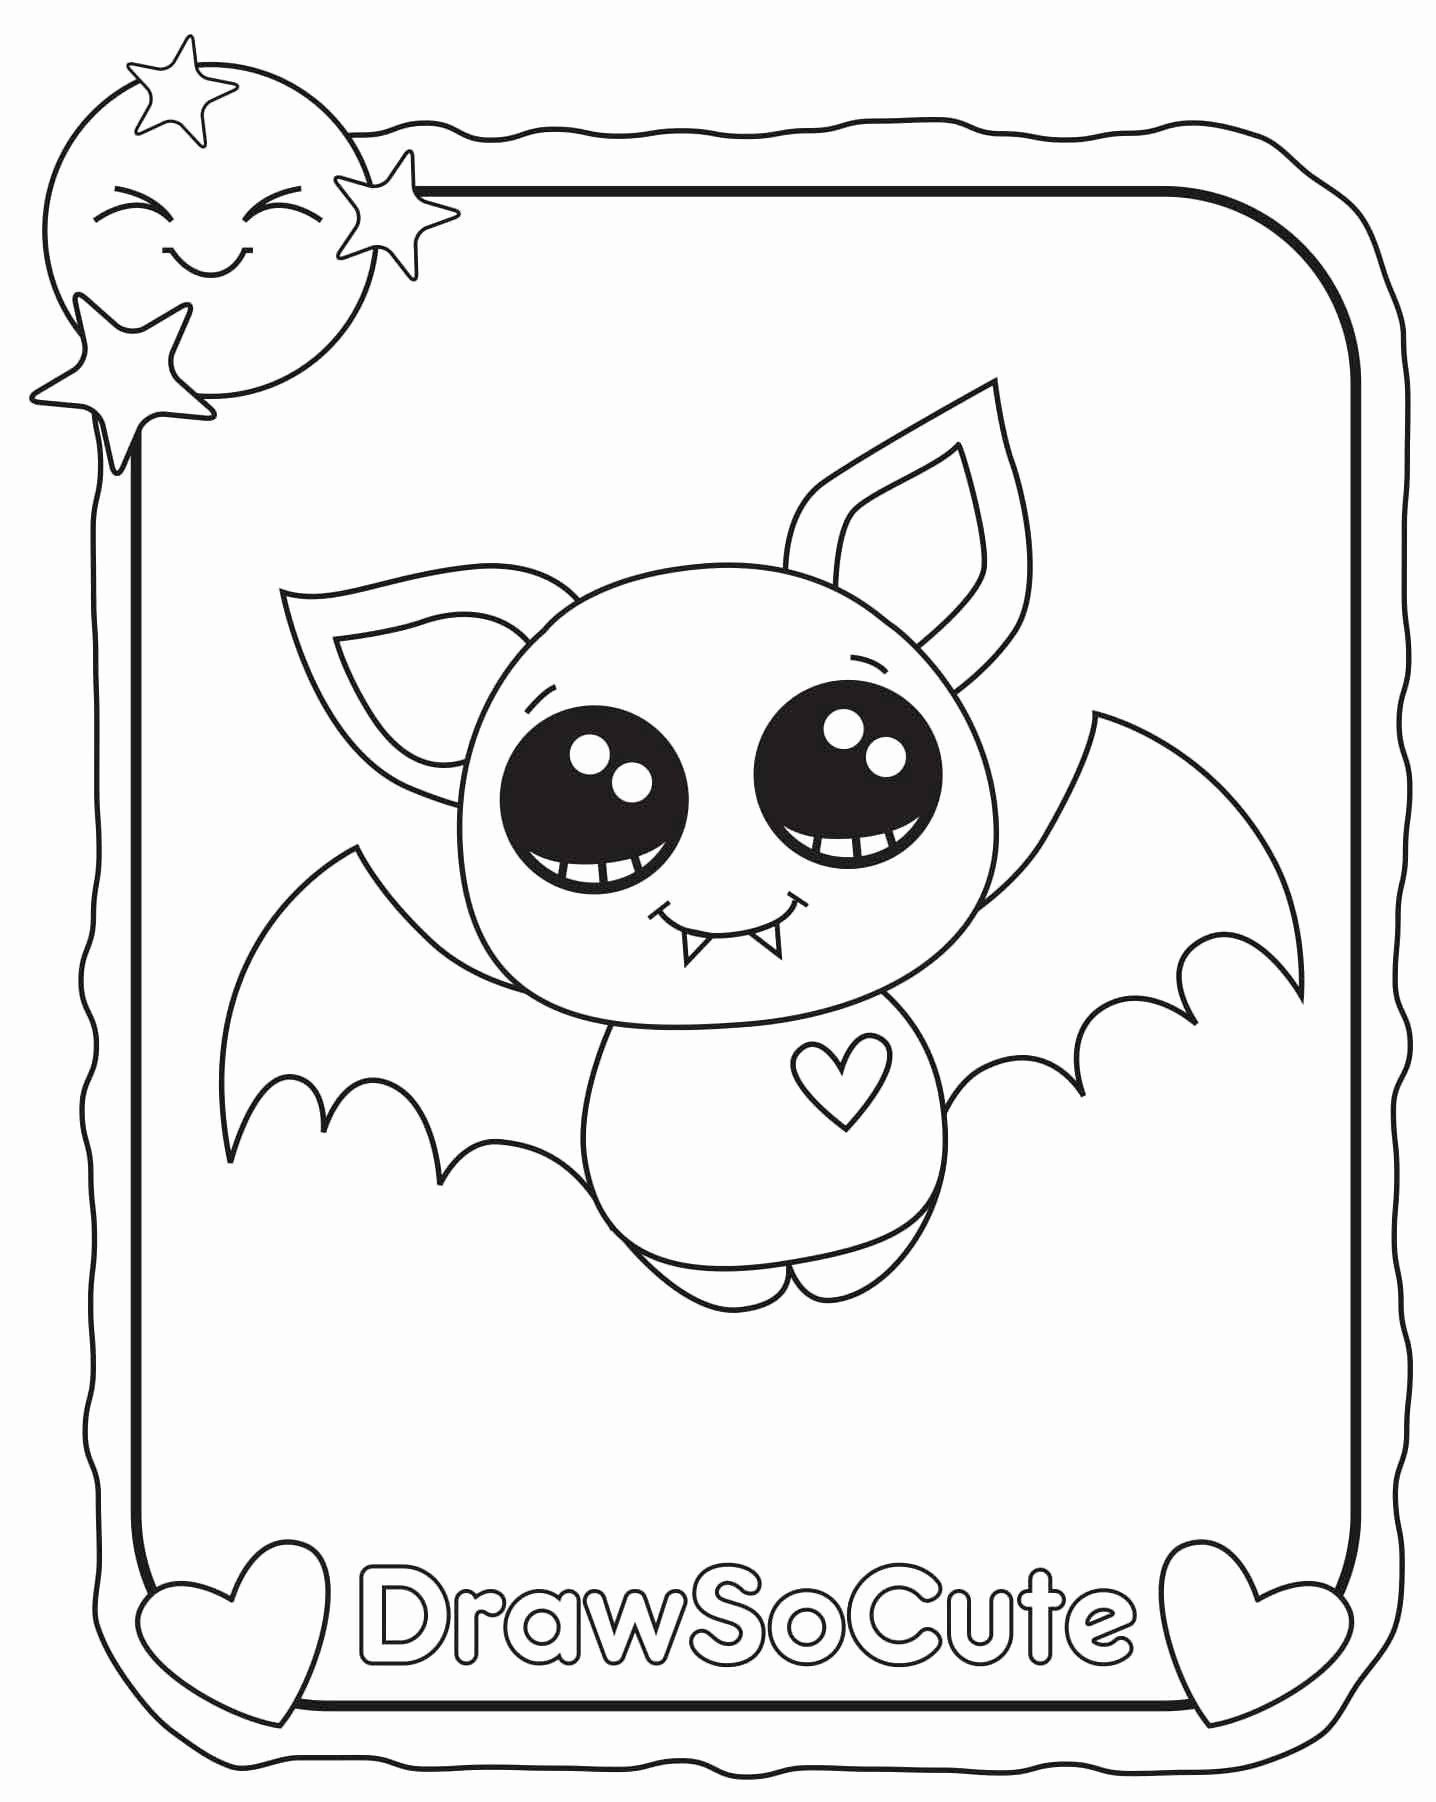 Halloween Bat Coloring Page Unique Halloween Bat Coloring Pages Free Printable Halloween Bat Halloween Coloring Pages Bat Coloring Pages Witch Coloring Pages